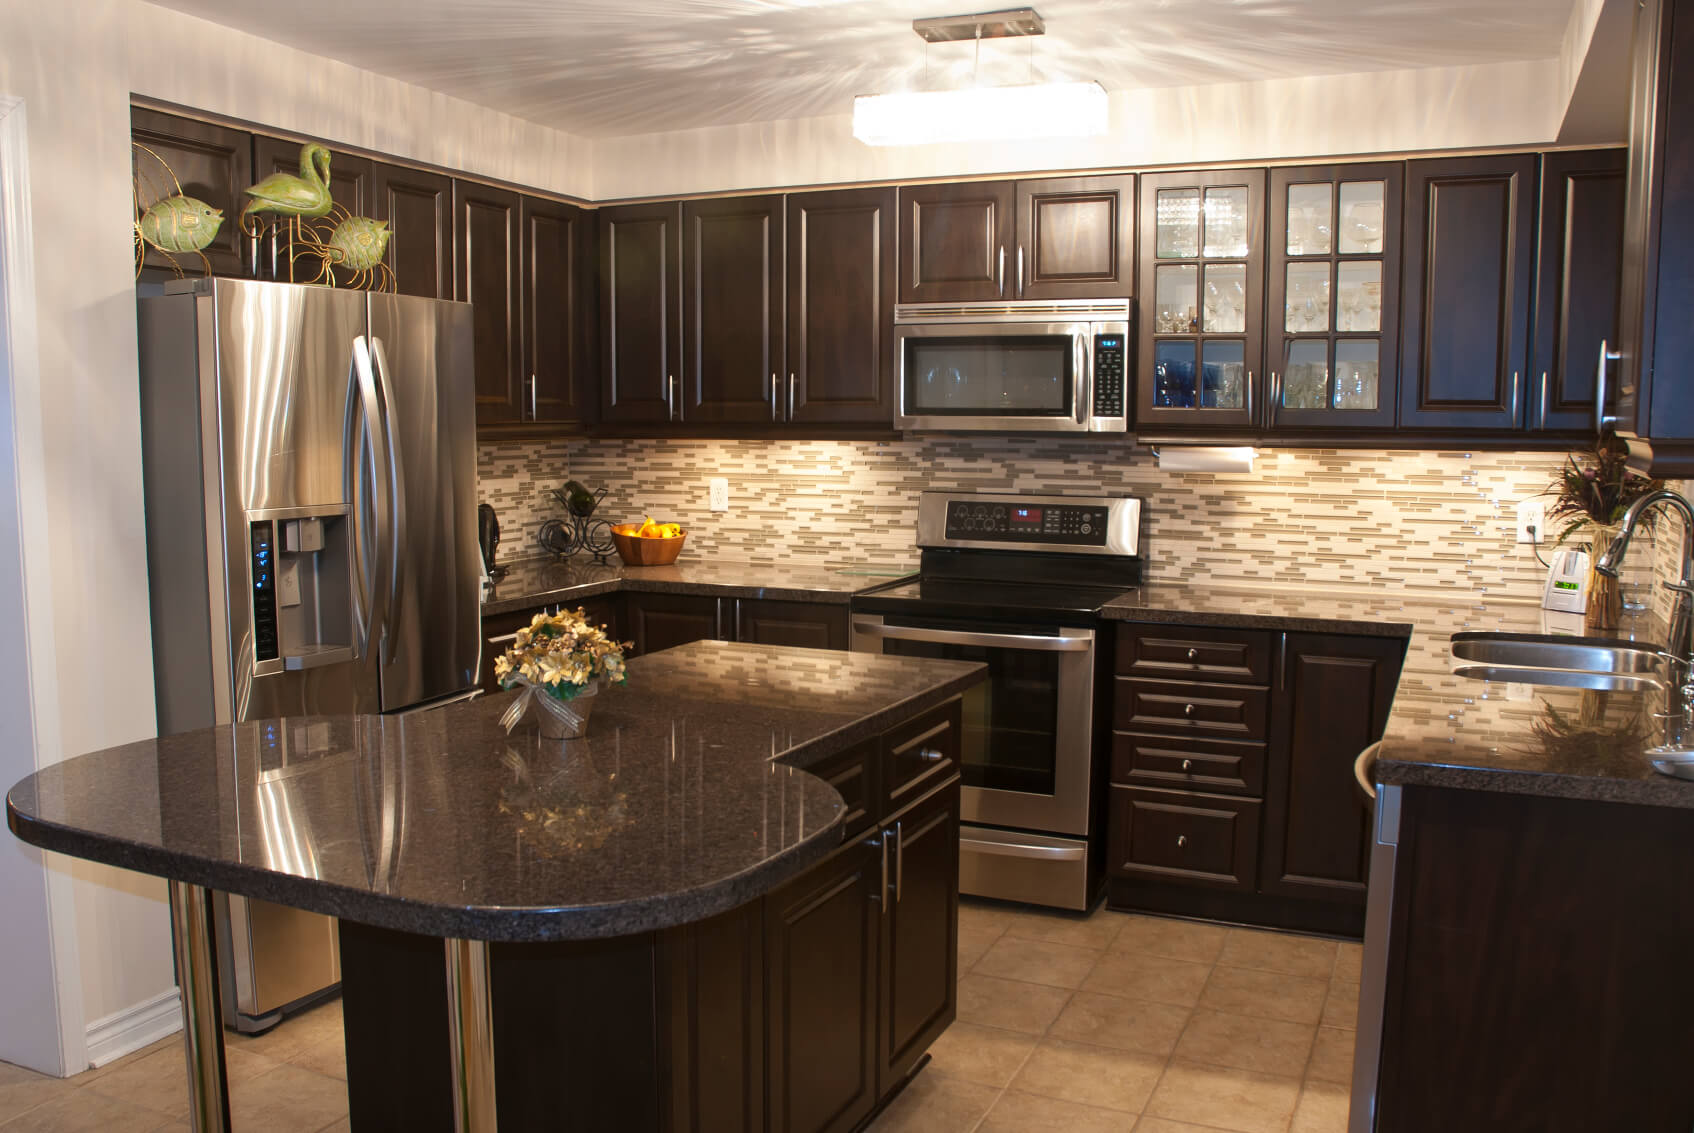 kitchen wood cabinets table sets under 200 52 dark kitchens with or black 2019 cozy is stuffed cabinetry brushed metal hardware marble